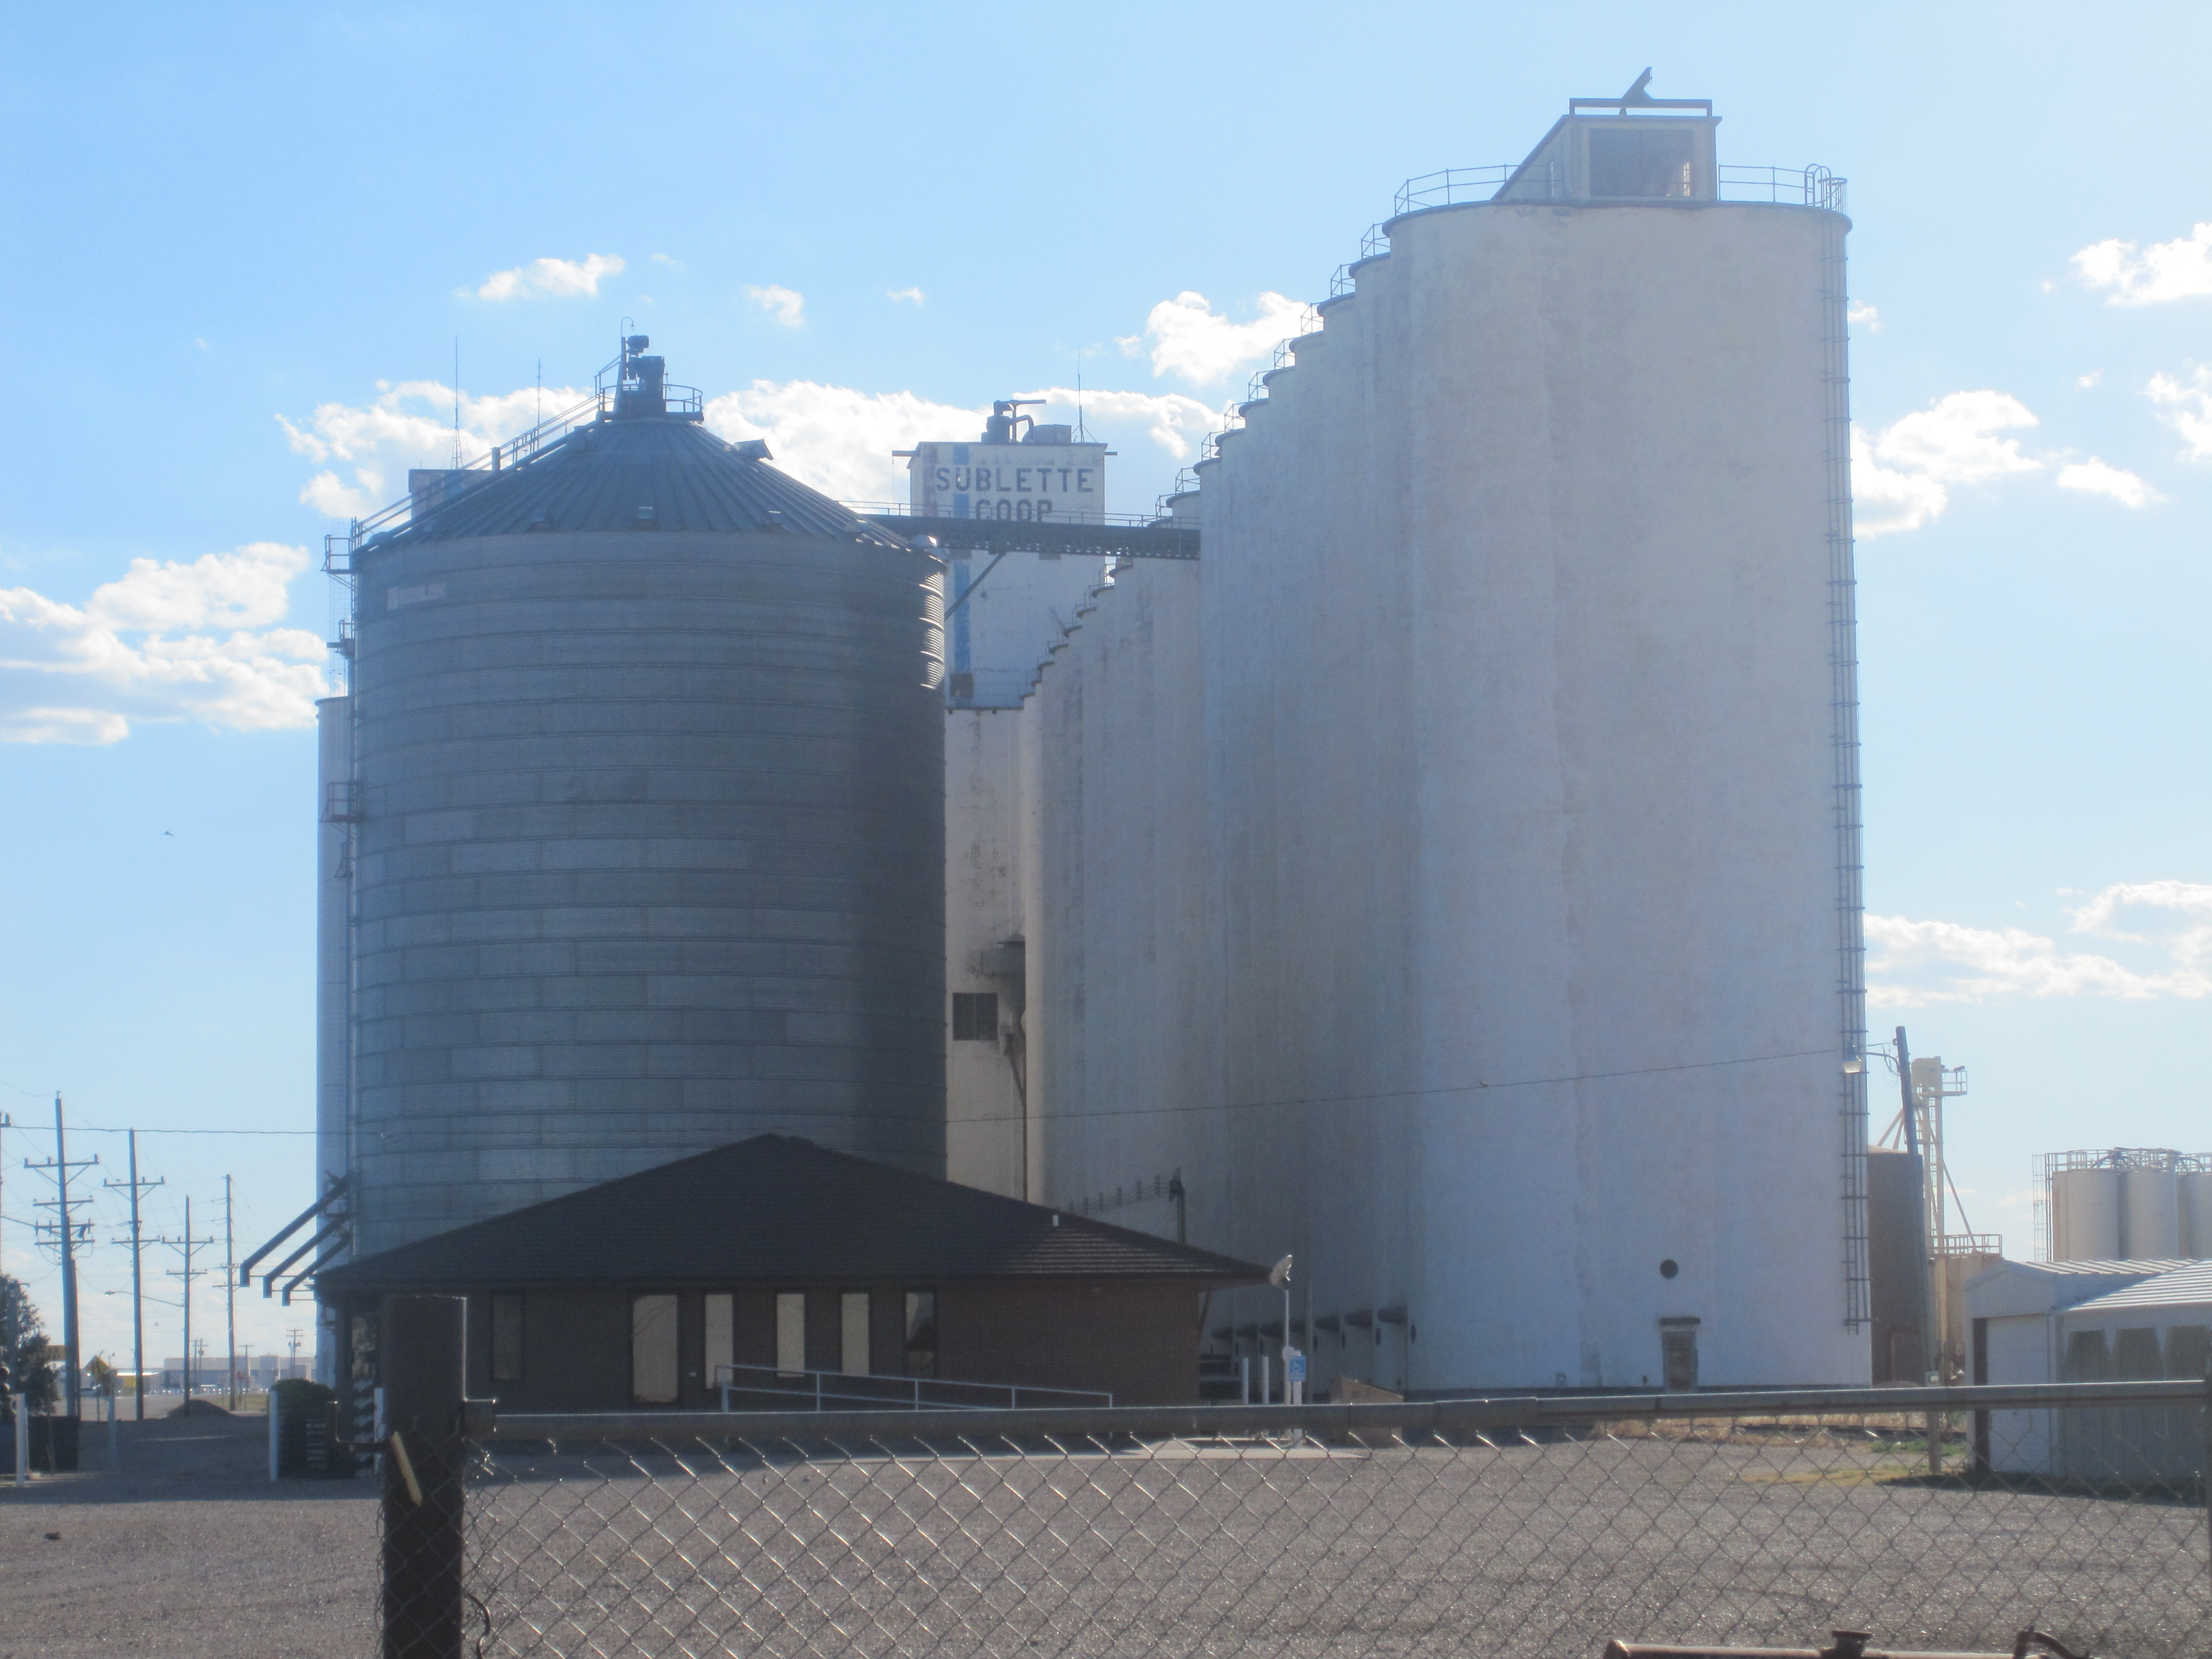 http://upload.wikimedia.org/wikipedia/commons/5/5f/Sublette,_KS_Co-op_grain_elevator_IMG_5967.JPG